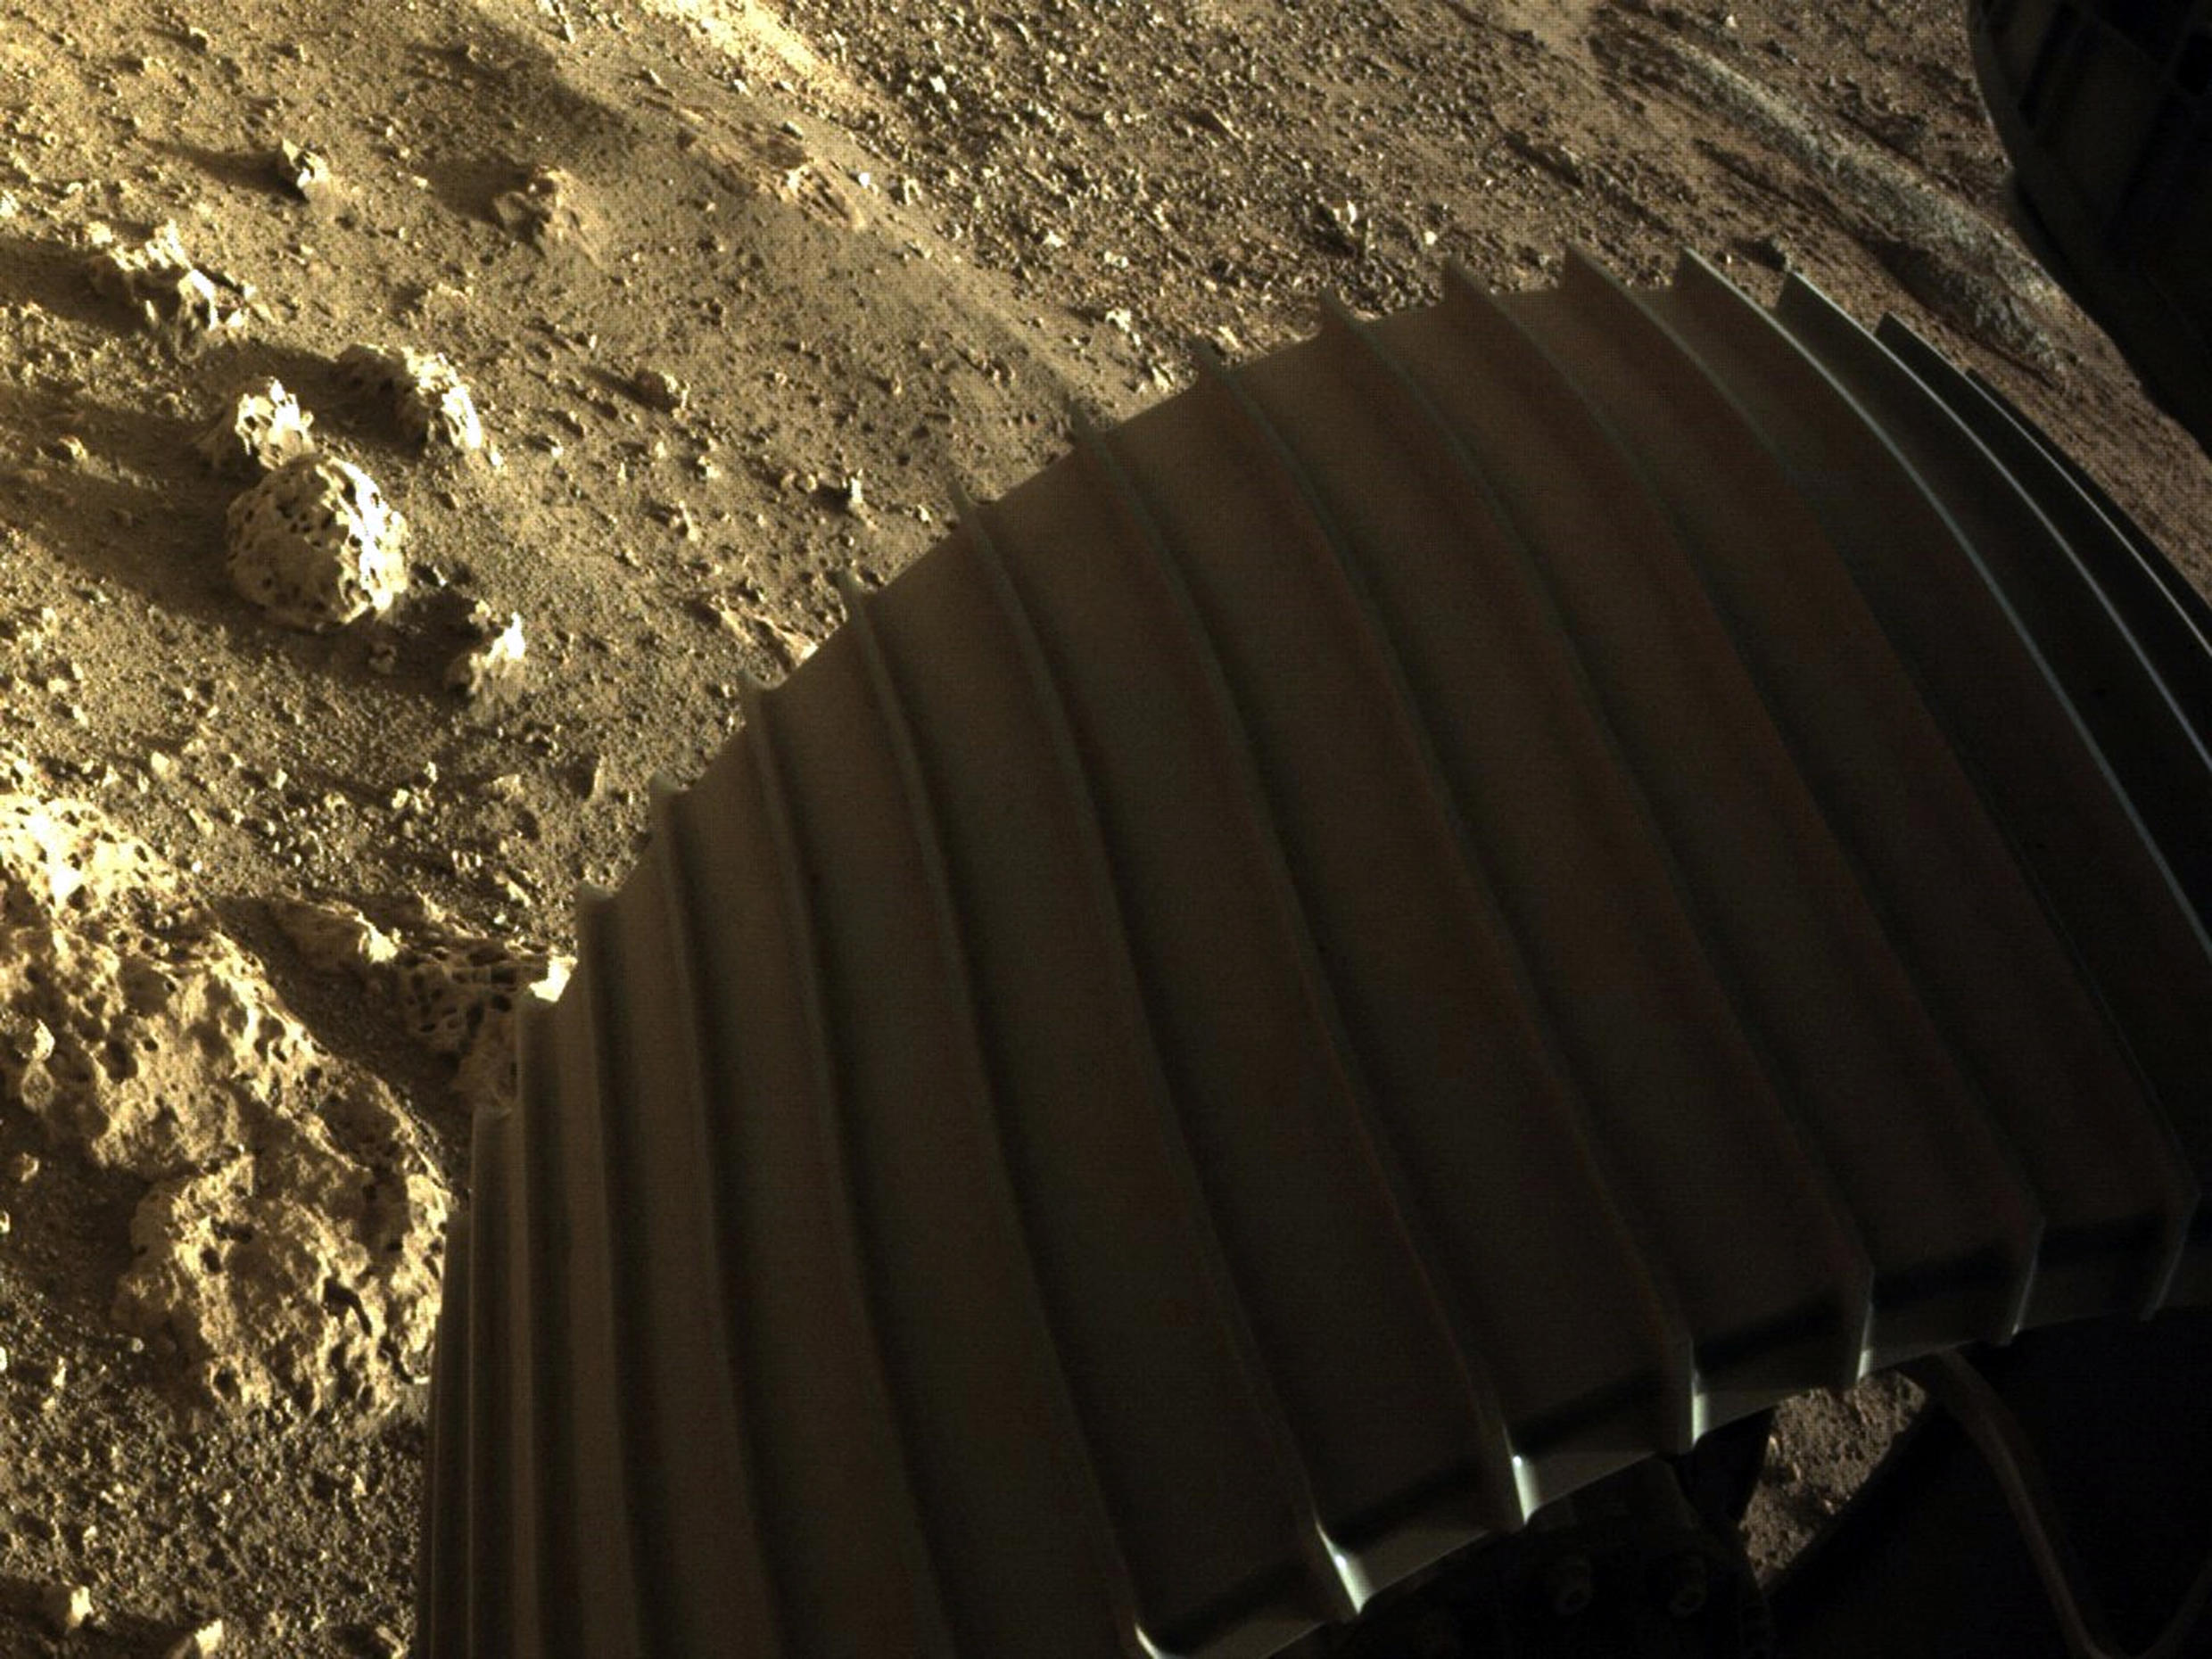 A colour image sent by Persverance shows one of the rover's six wheels with rocks thought to be more than 3.6 billion years old lying next to it.